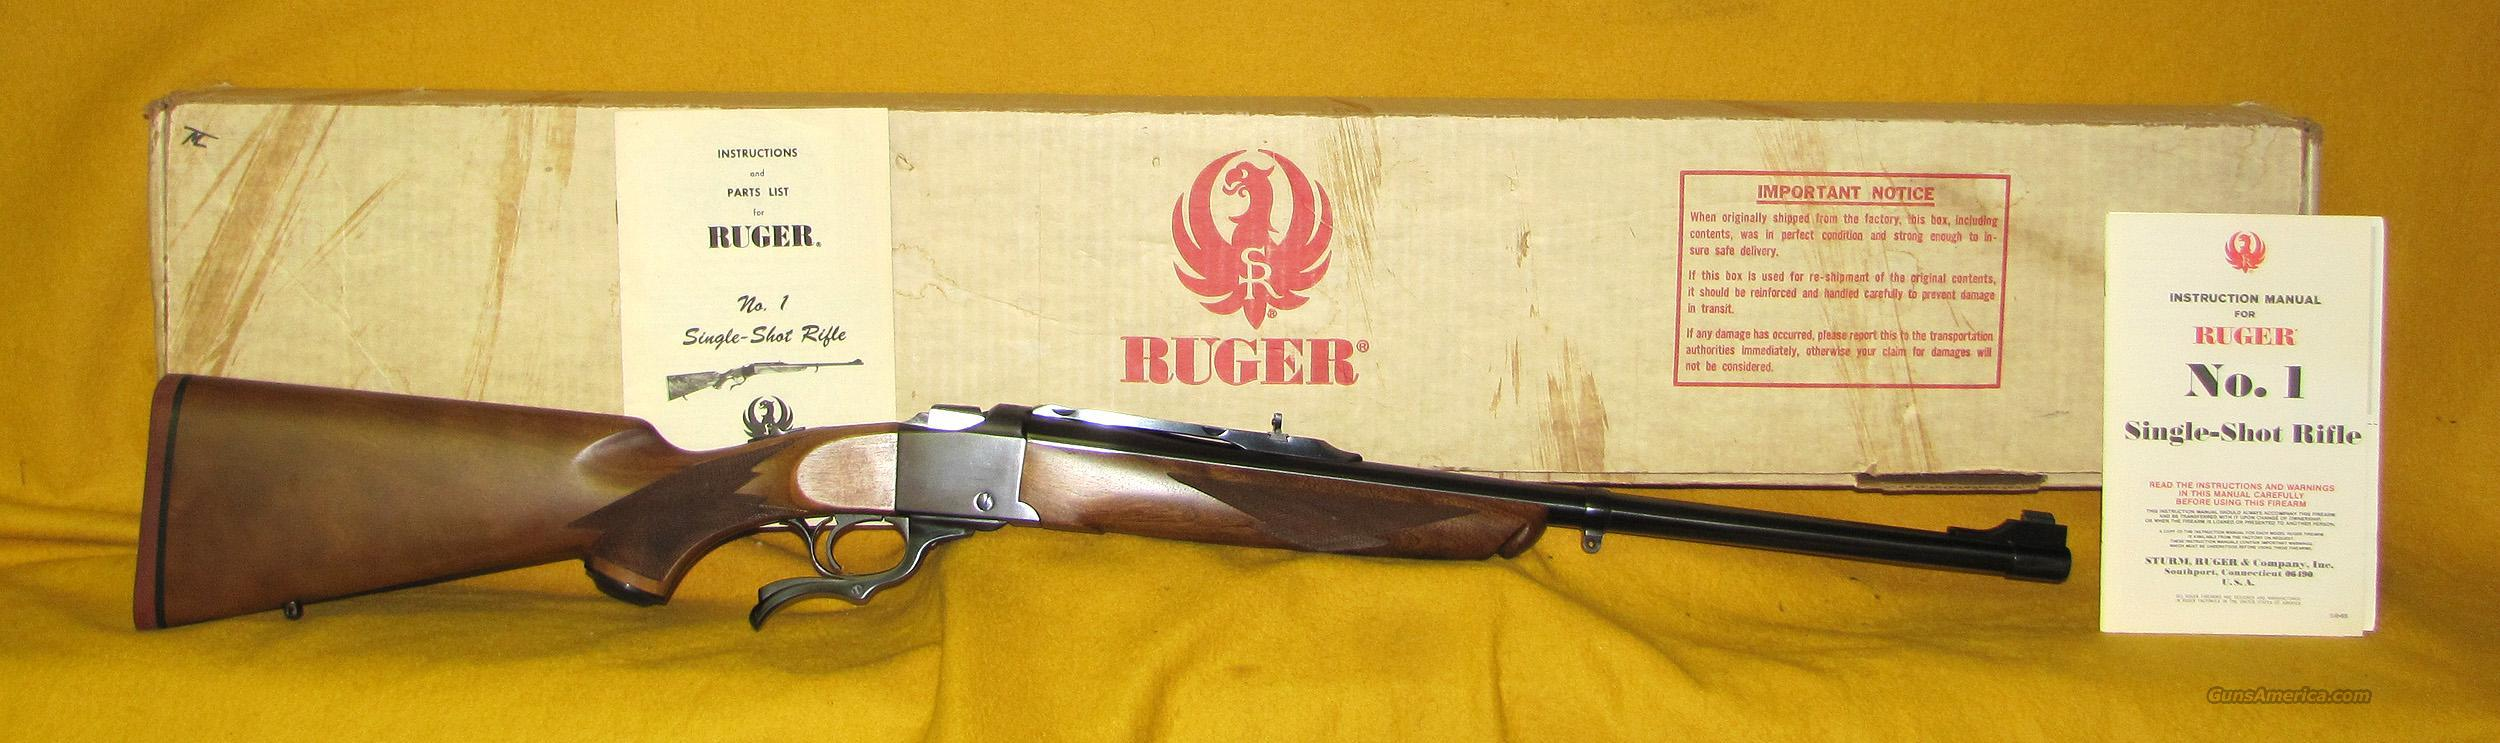 RUGER NO 1S  Guns > Rifles > Ruger Rifles > #1 Type